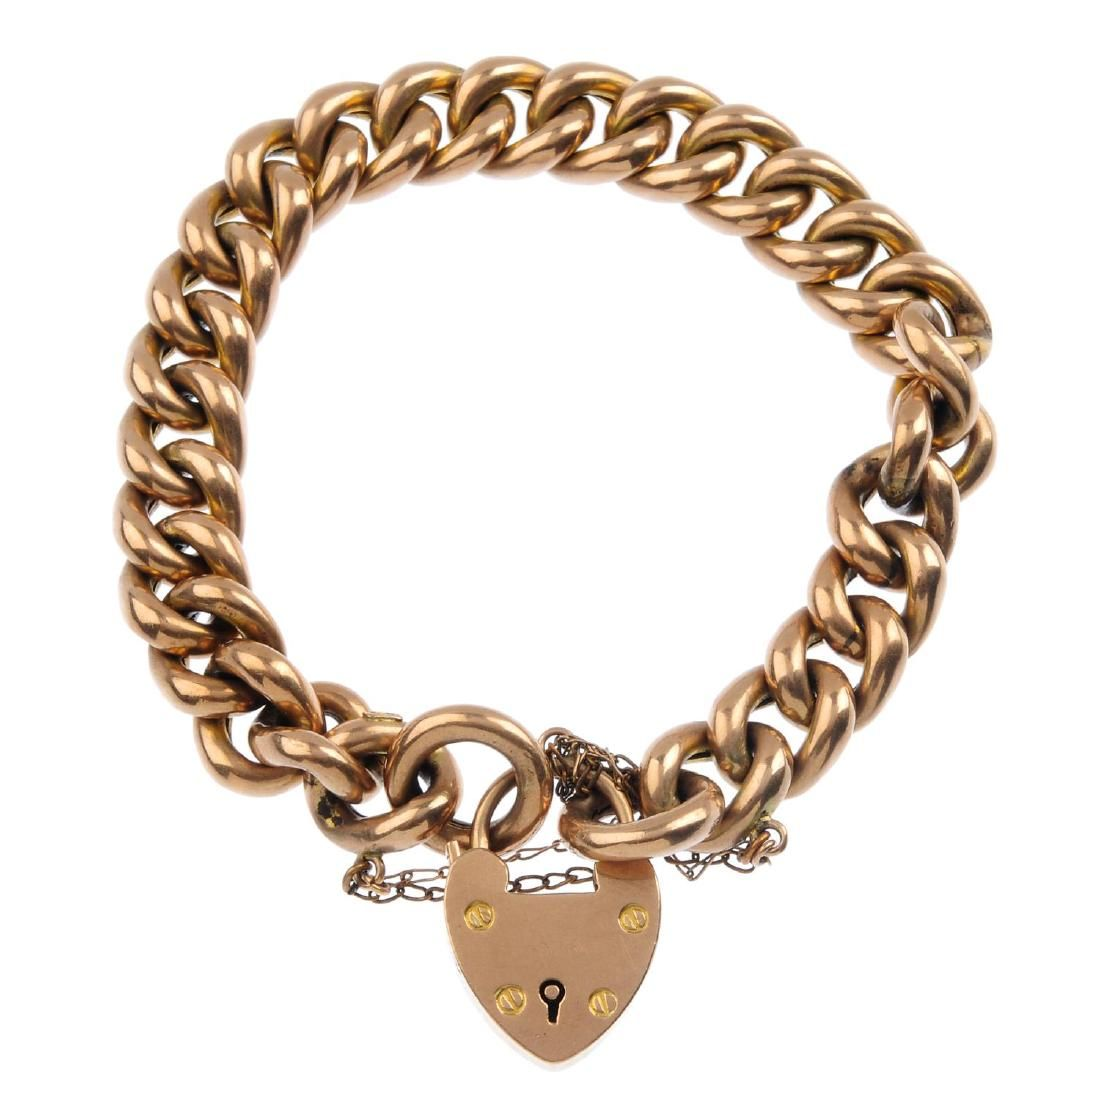 A late Victorian 9ct gold bracelet, with padlock clasp.